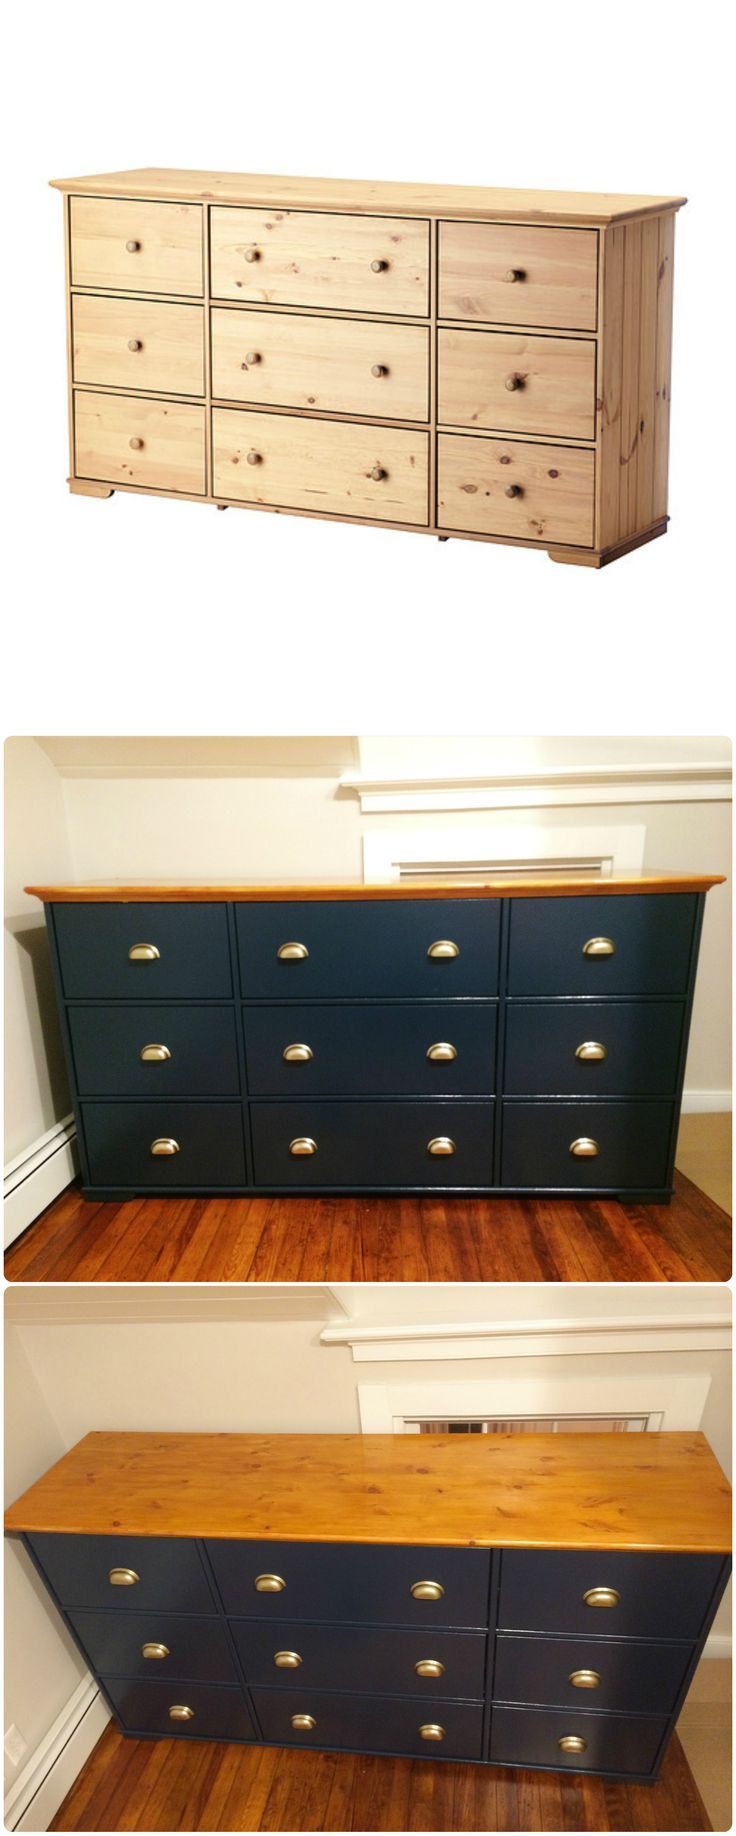 Love this dresser for the boys room!  Hurdal 9 drawer dresser painted in Farrow & Ball Hague Blue, with Ikea brand brushed gold pulls, hand planed and stained top